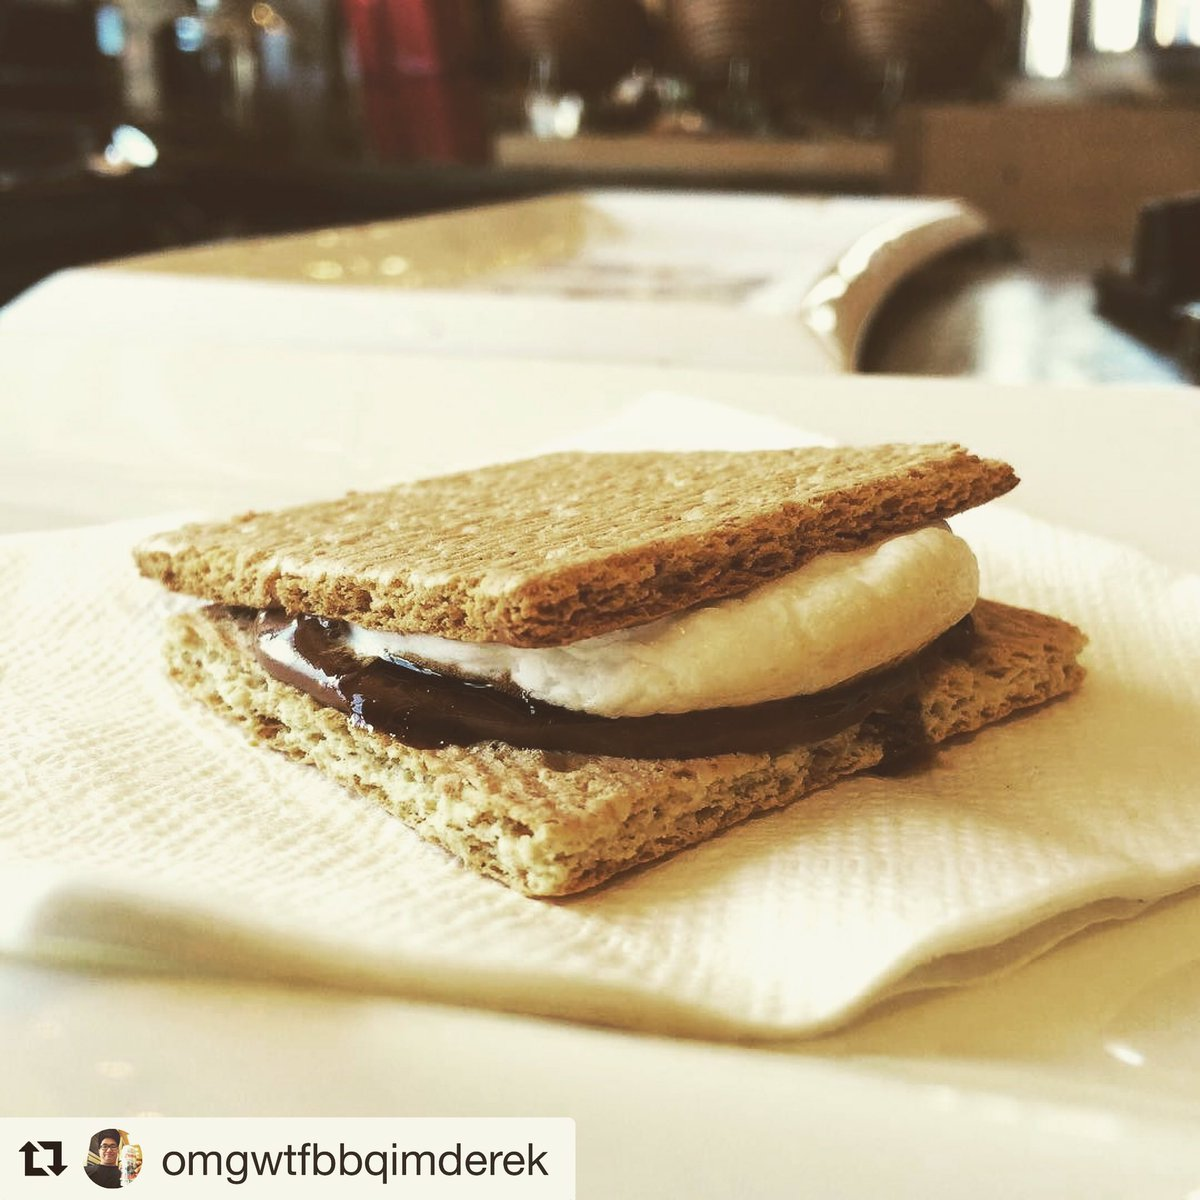 #Maple infused #balsamicvinegar drizzled onto a #marshmallow and #Nutella s&#39;more . . #fatlife #fatkidproblems #food<br>http://pic.twitter.com/lwvpo8dHcj